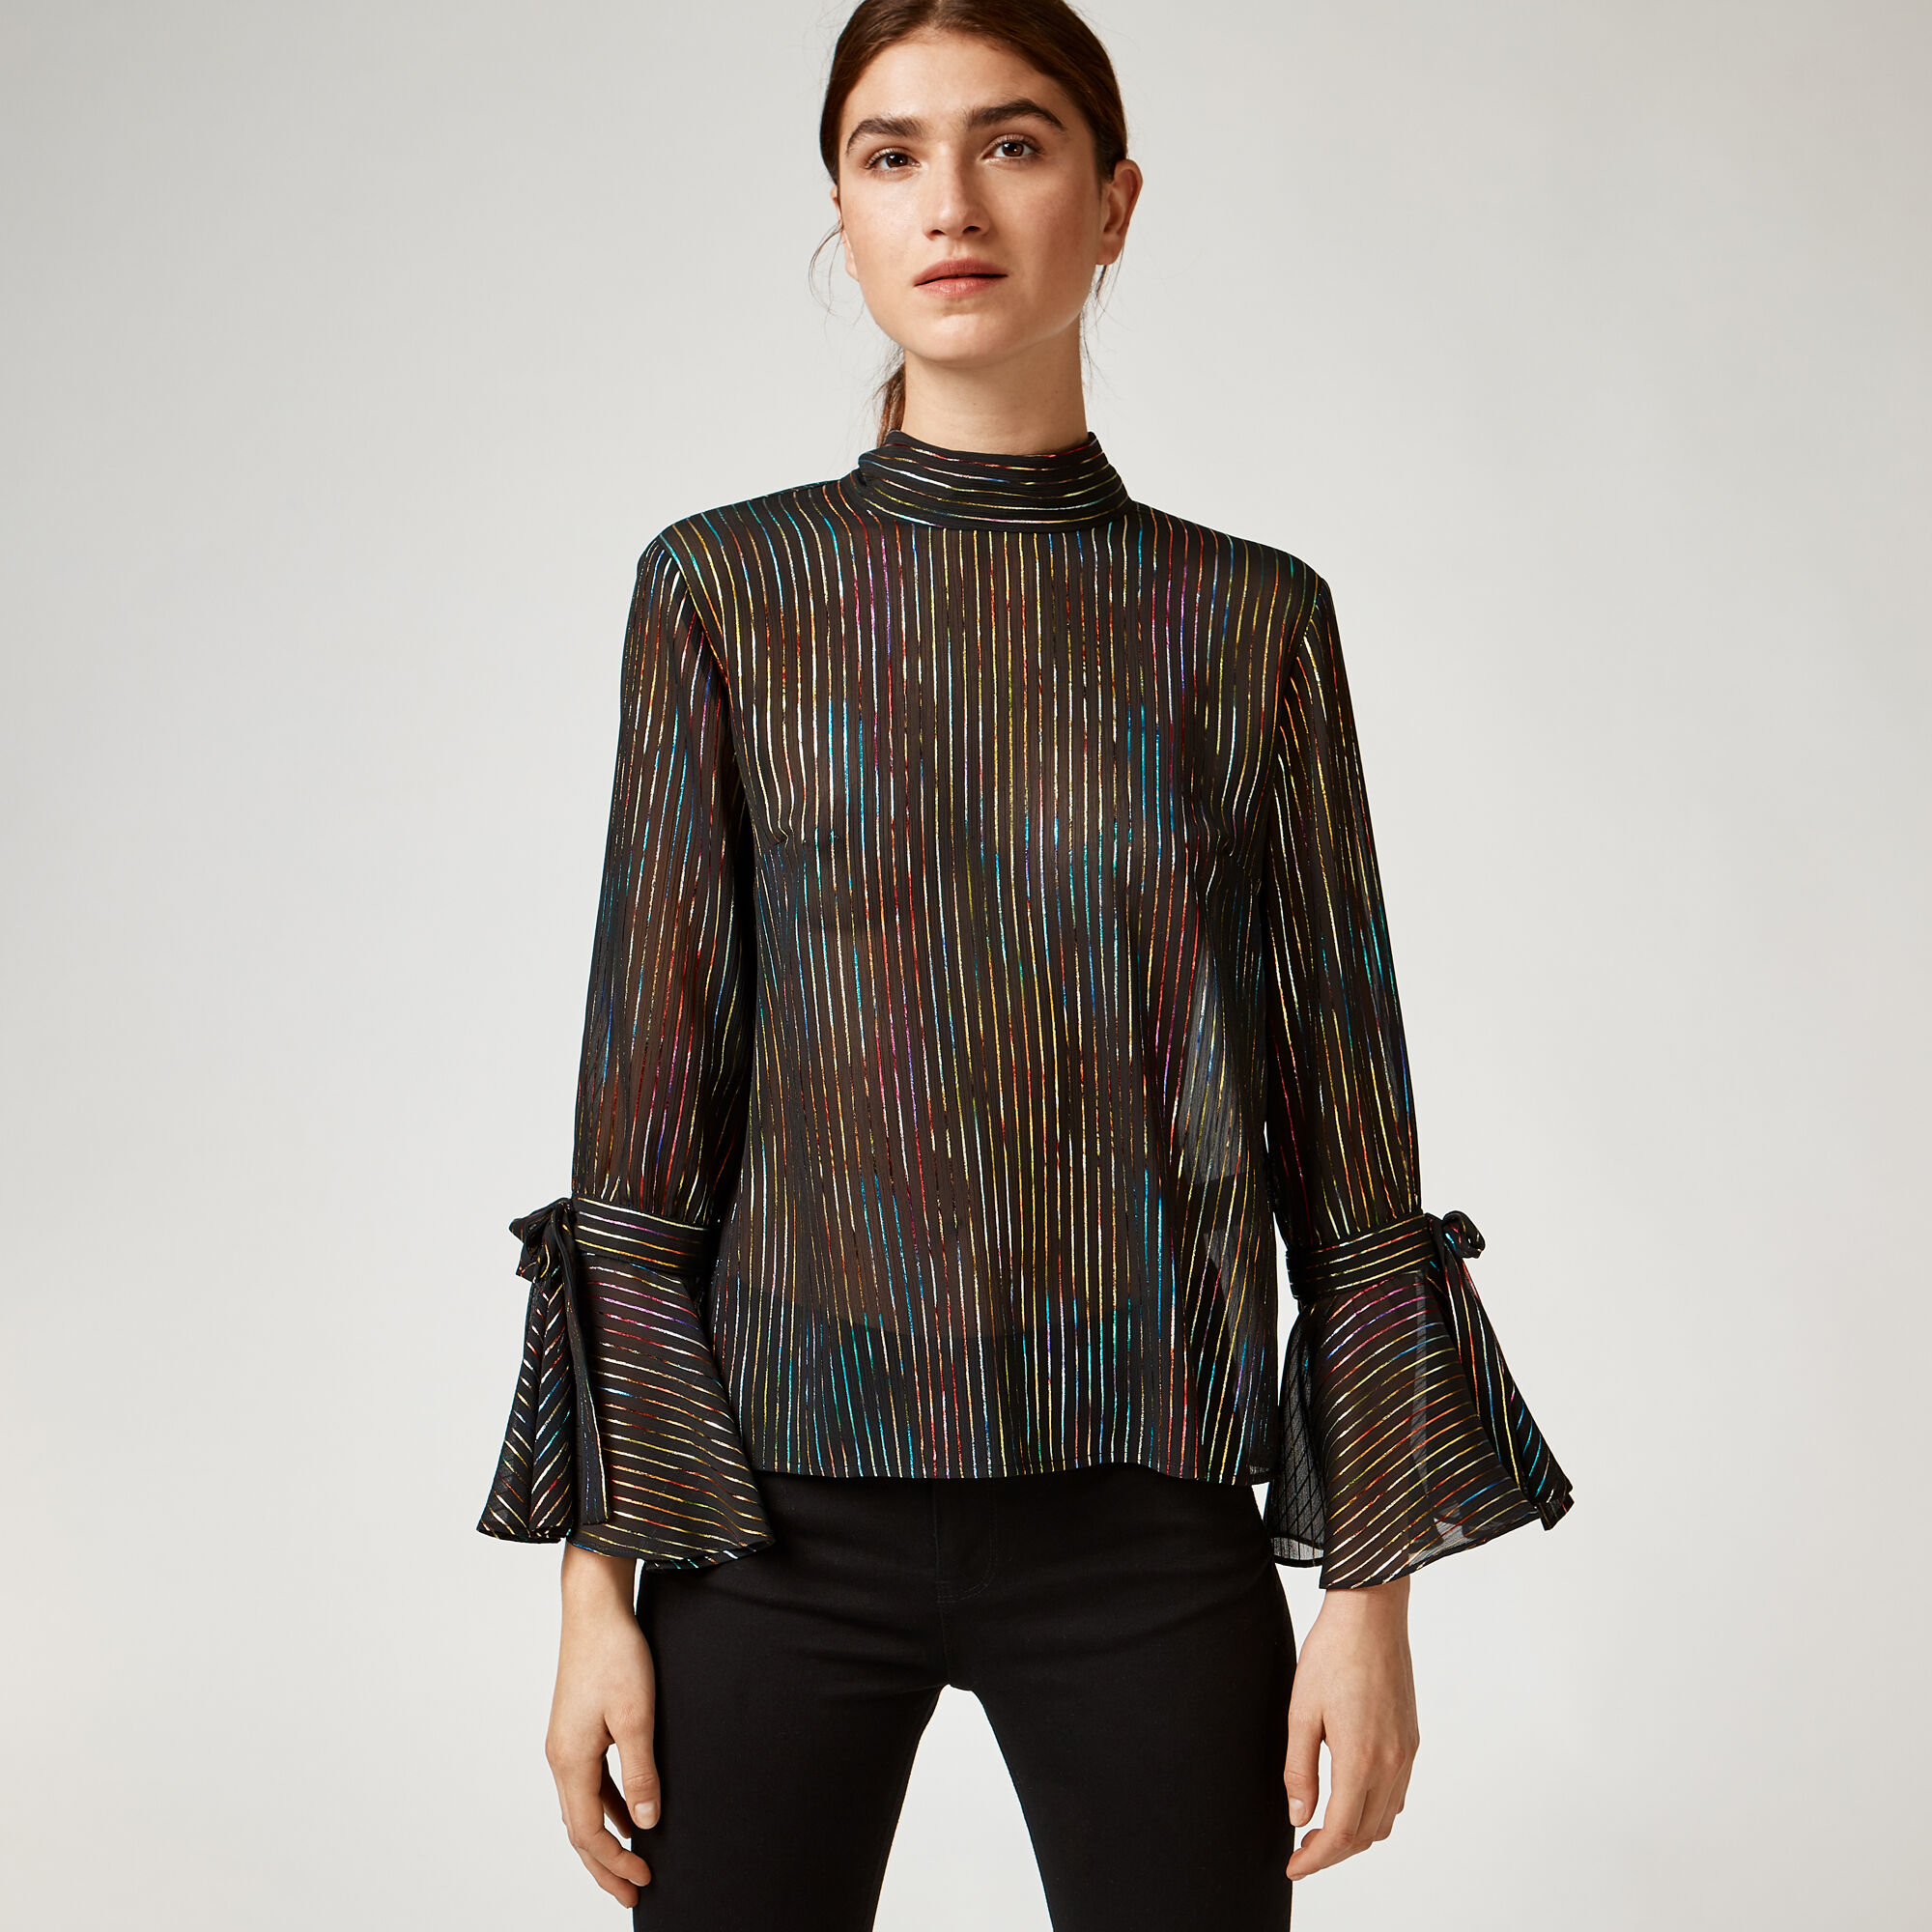 Warehouse, RAINBOW SHIMMER TIE BACK TOP Black Pattern 1